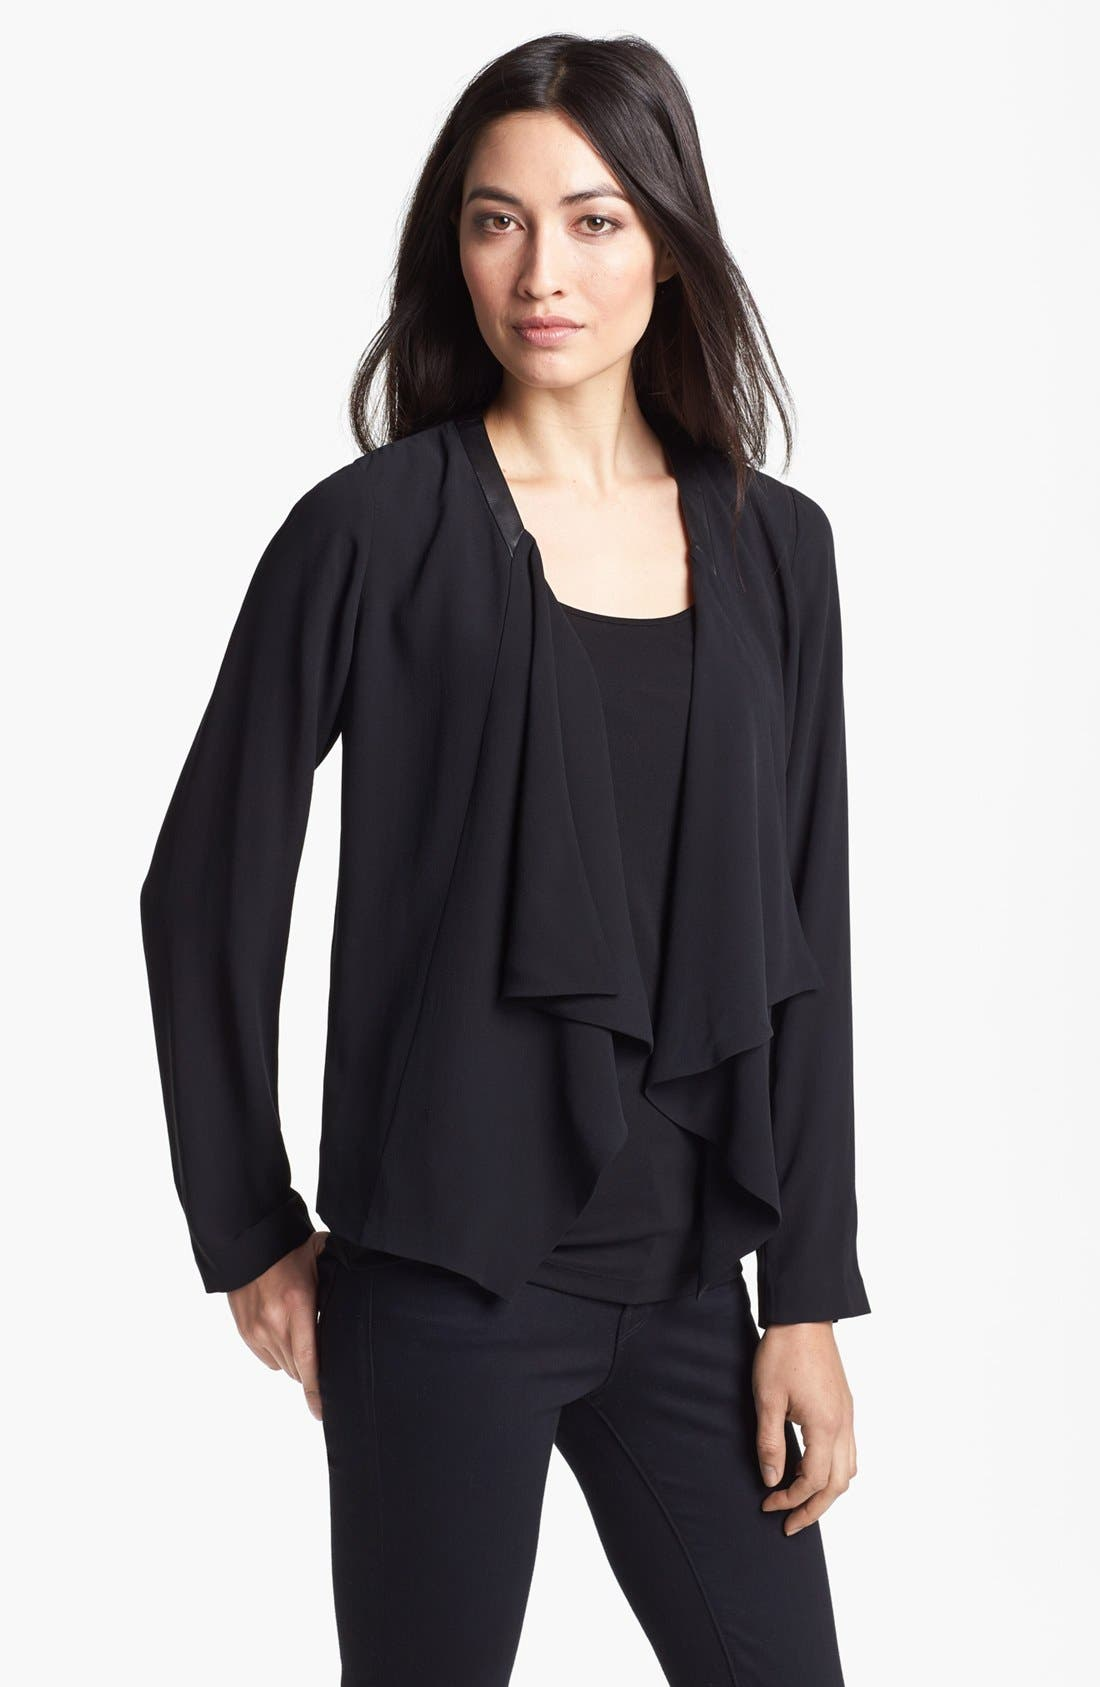 Alternate Image 1 Selected - Eileen Fisher Leather Trim Drape Front Silk Jacket (Regular & Petite)